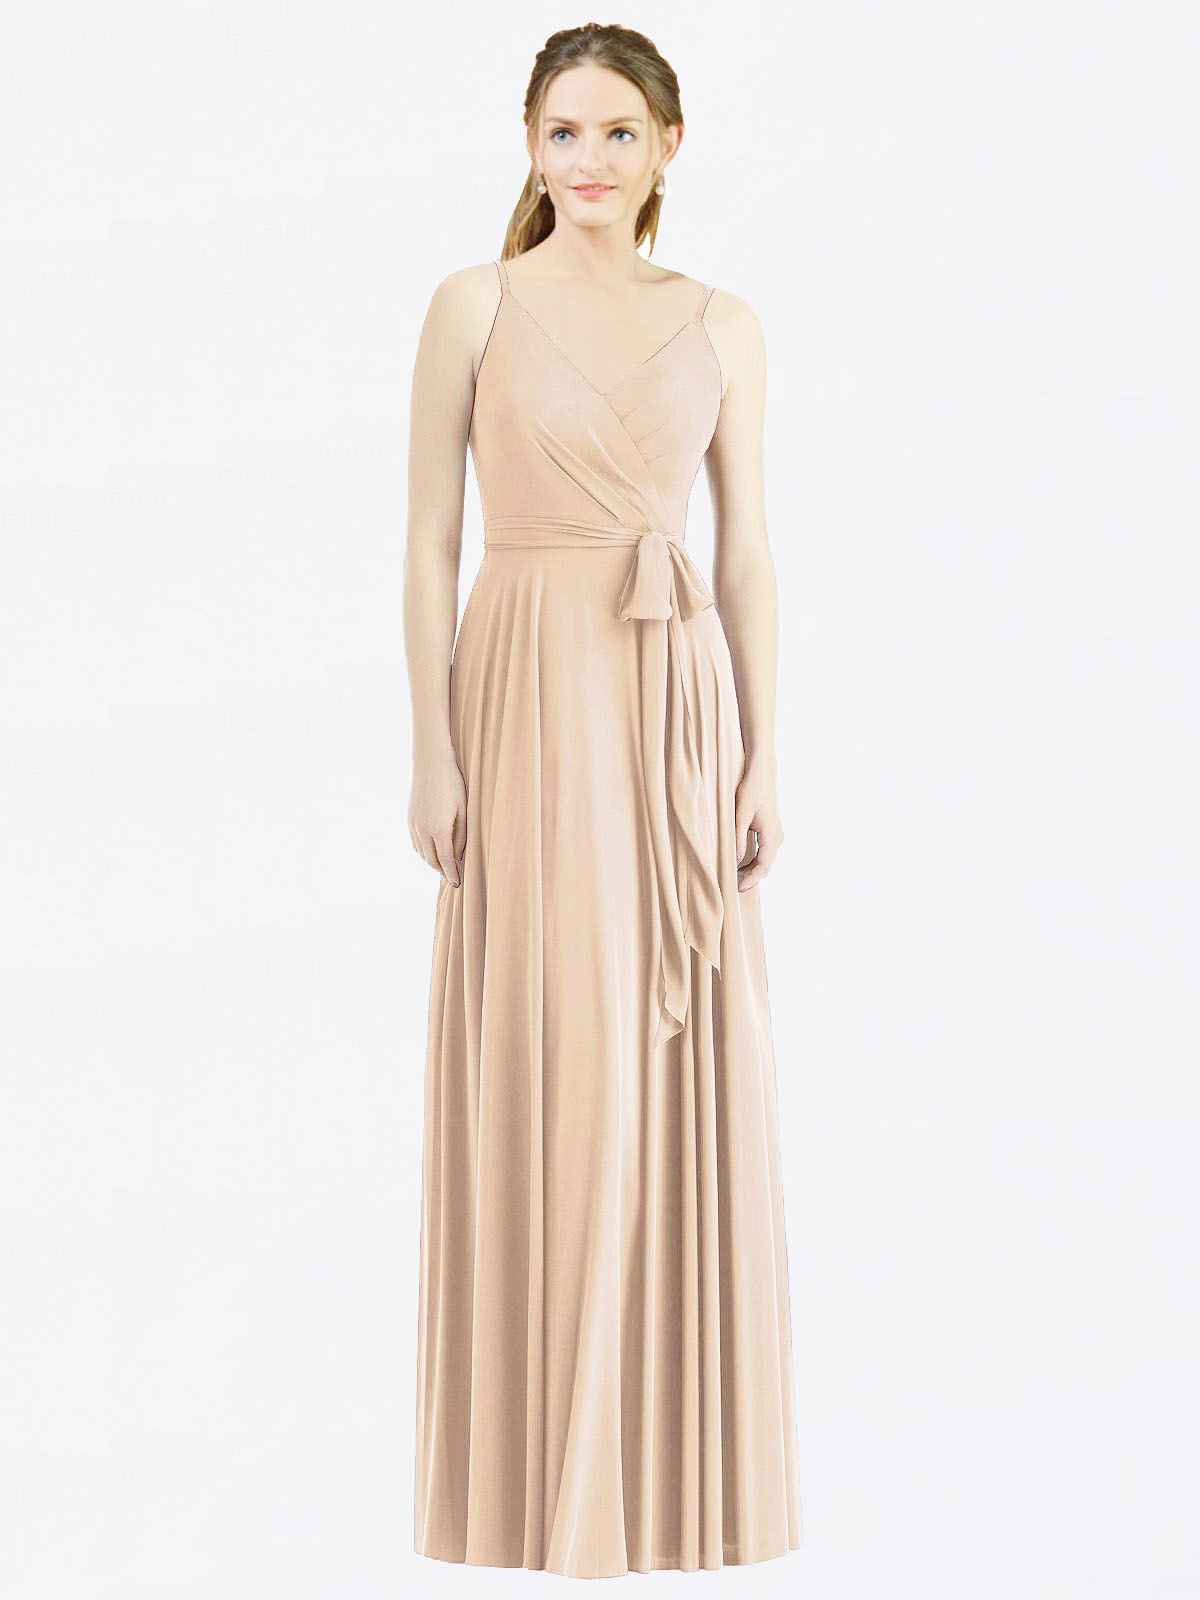 Long A-Line Spaghetti Straps, V-Neck Sleeveless Champagne Chiffon Bridesmaid Dress Madilyn